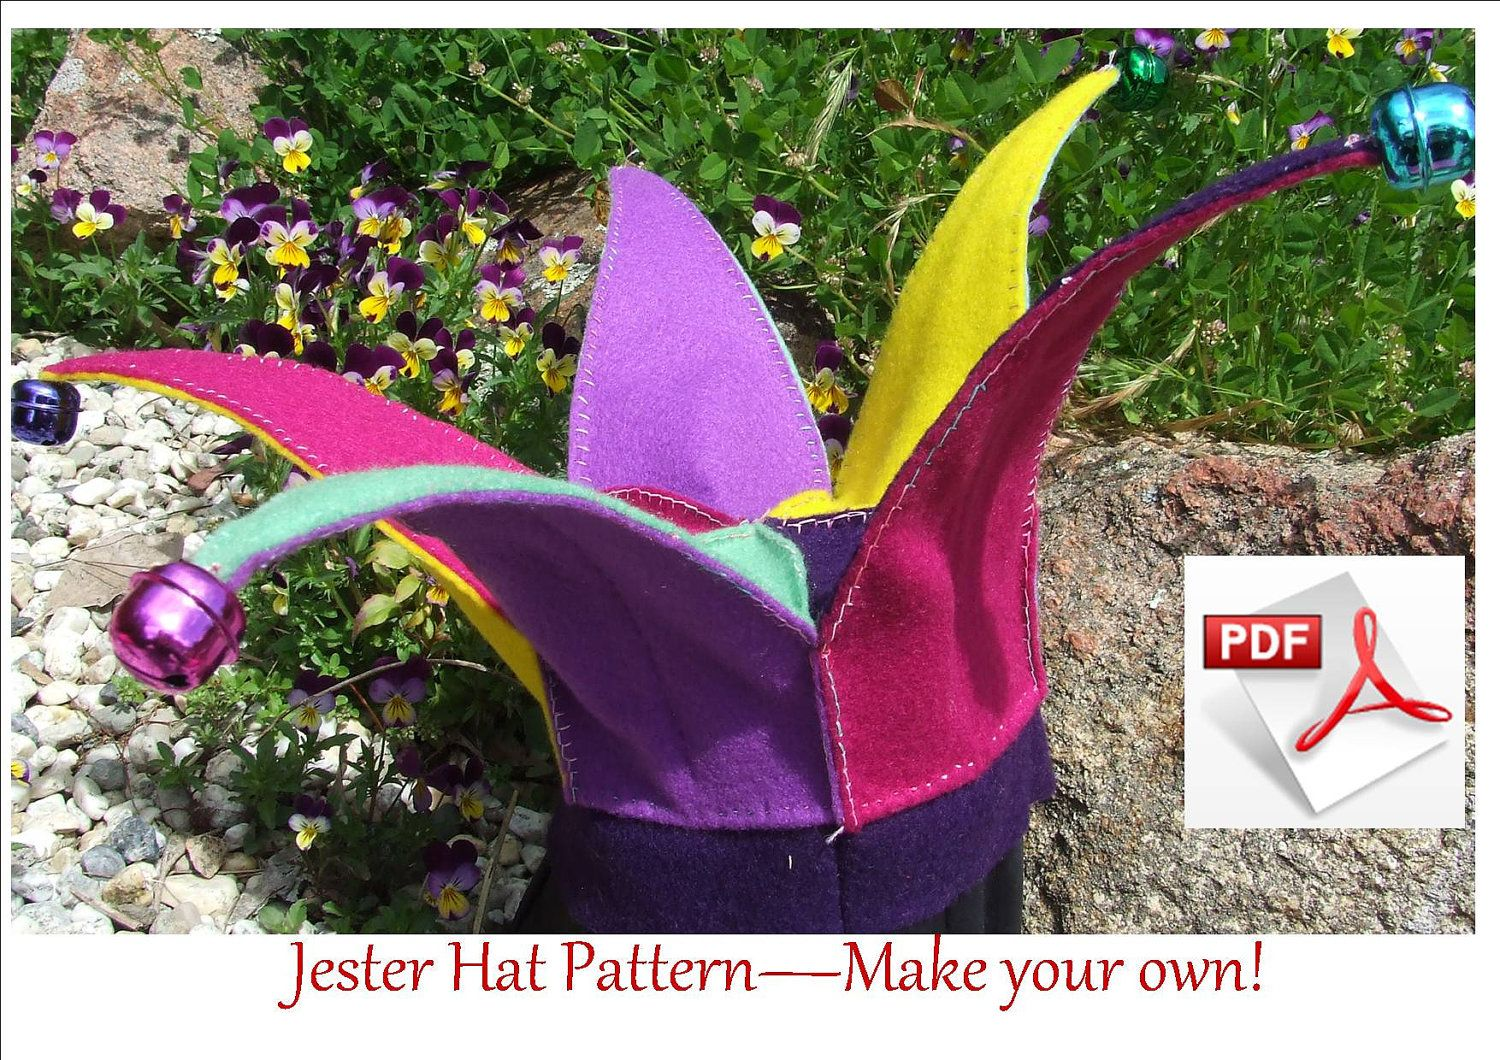 Jester Hat Or Elf Hat Sewing Pattern Elf Or Jester Costume Pattern For Babies 6 To 18 Months